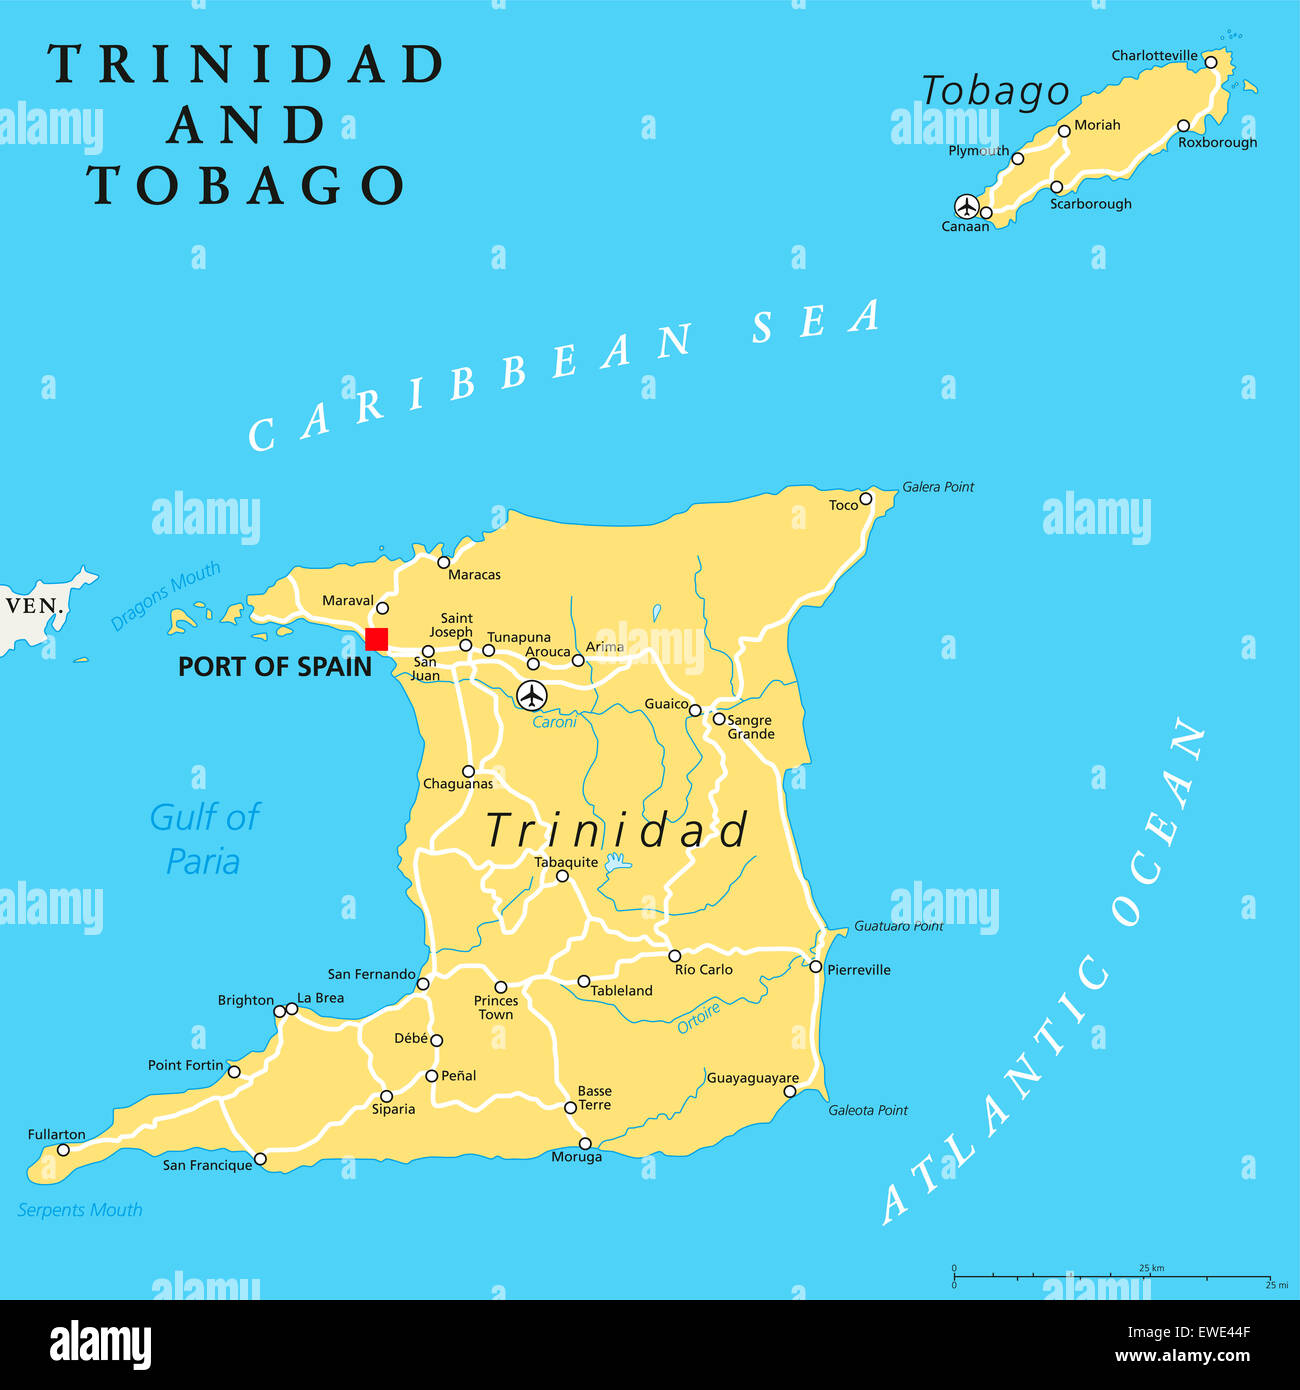 trinidad and tobago political map with capital port of spain twin